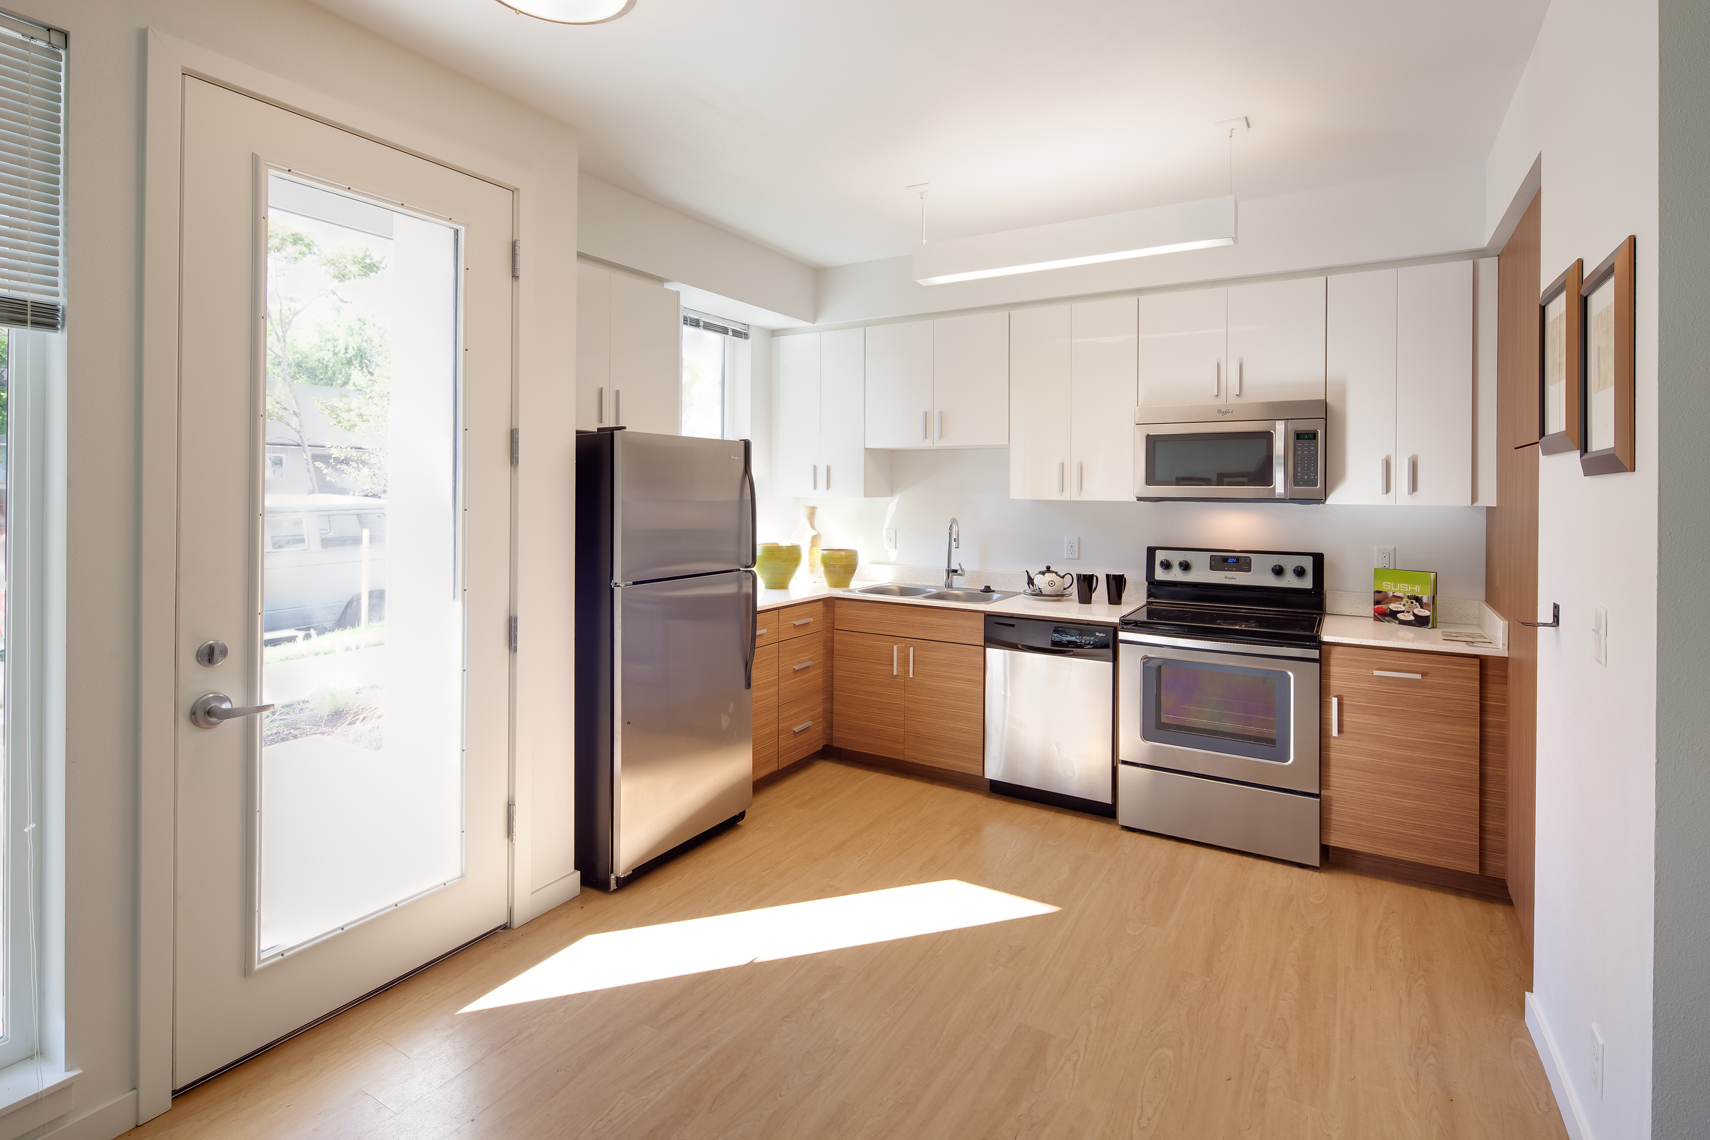 THEANDY_MULTIFAMILY_KITCHEN_SMALL